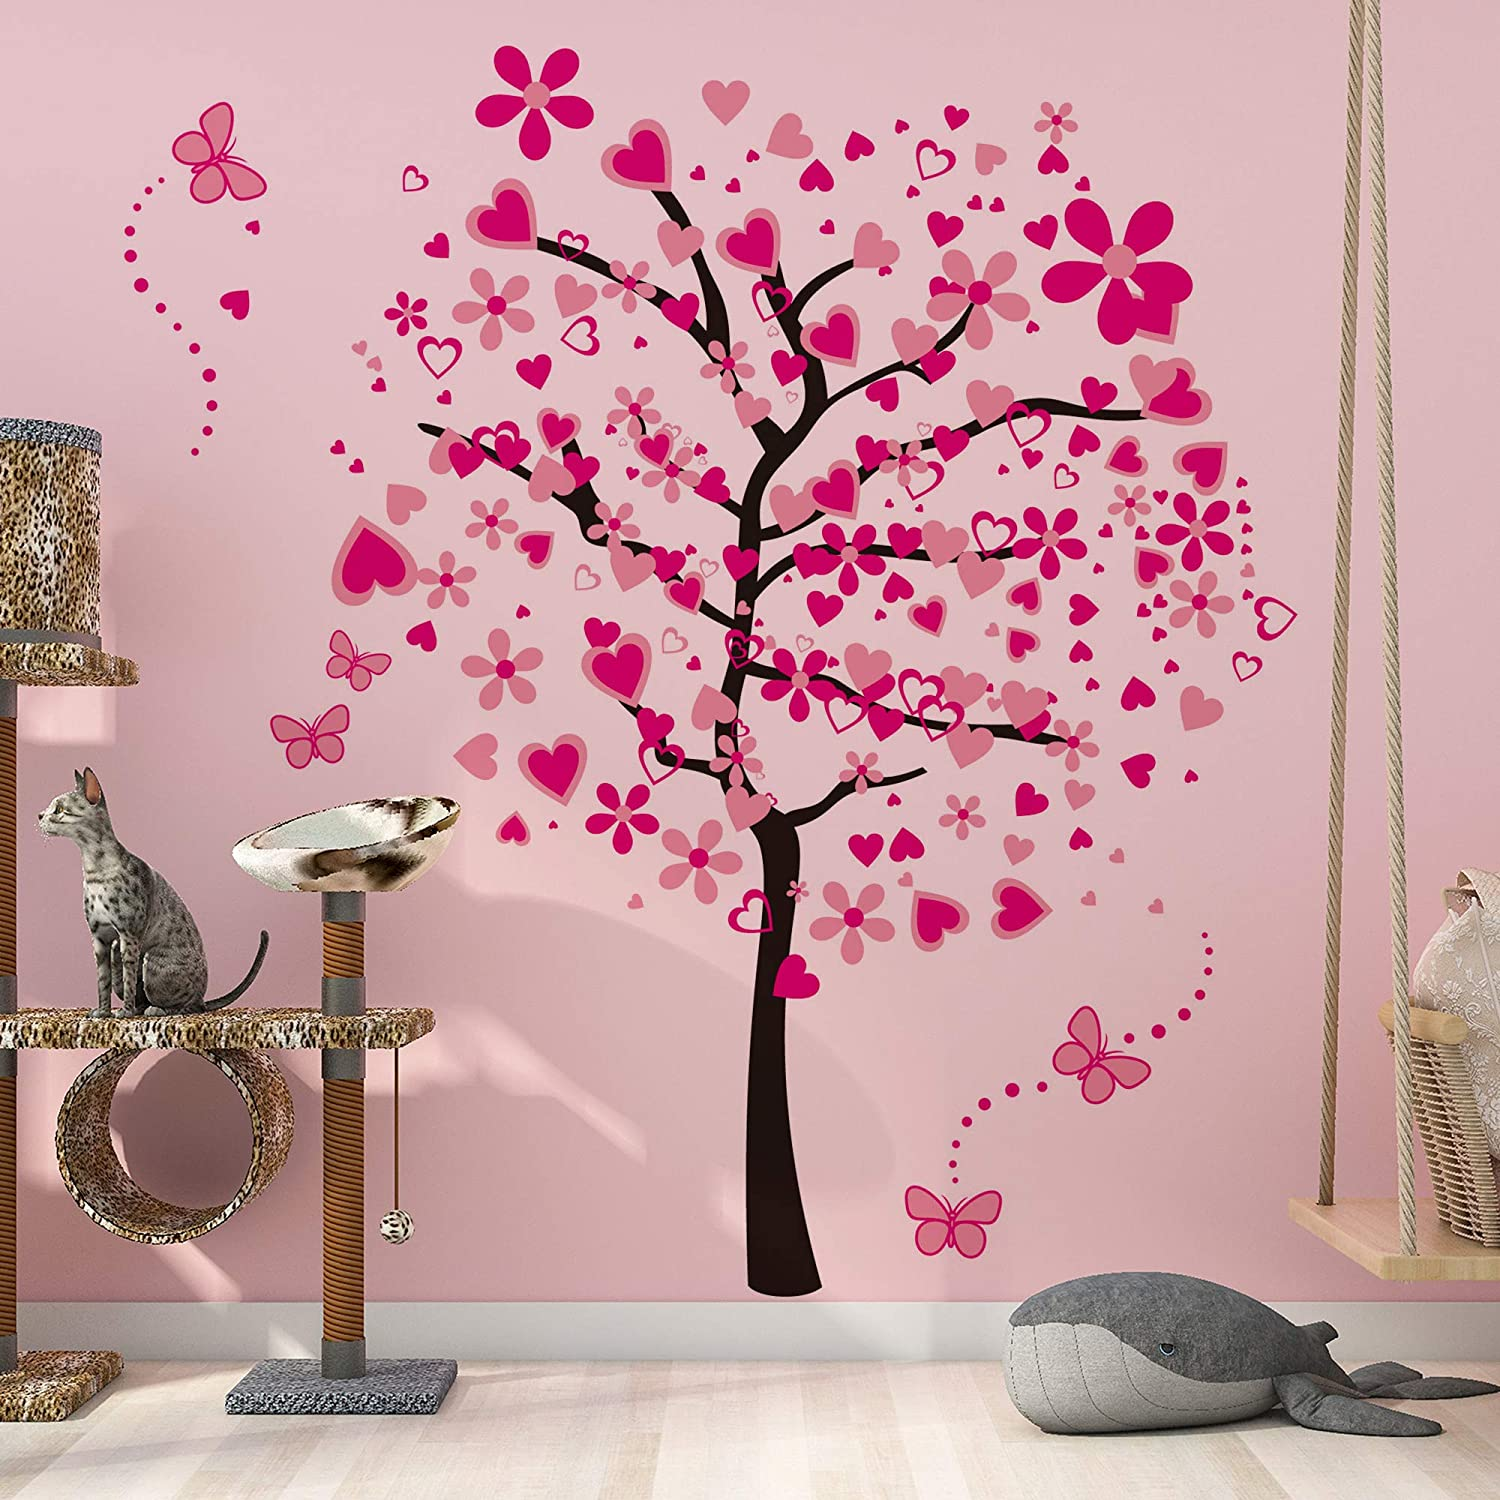 RW-1306 Removable Pink Cartoon Heart Flower Tree Wall Decals DIY Butterflies Branch Tree Wall Art Mural Wallpaper for Kids Girls Babys Bedroom Bathroom Living Room Nursery Offices Decoration